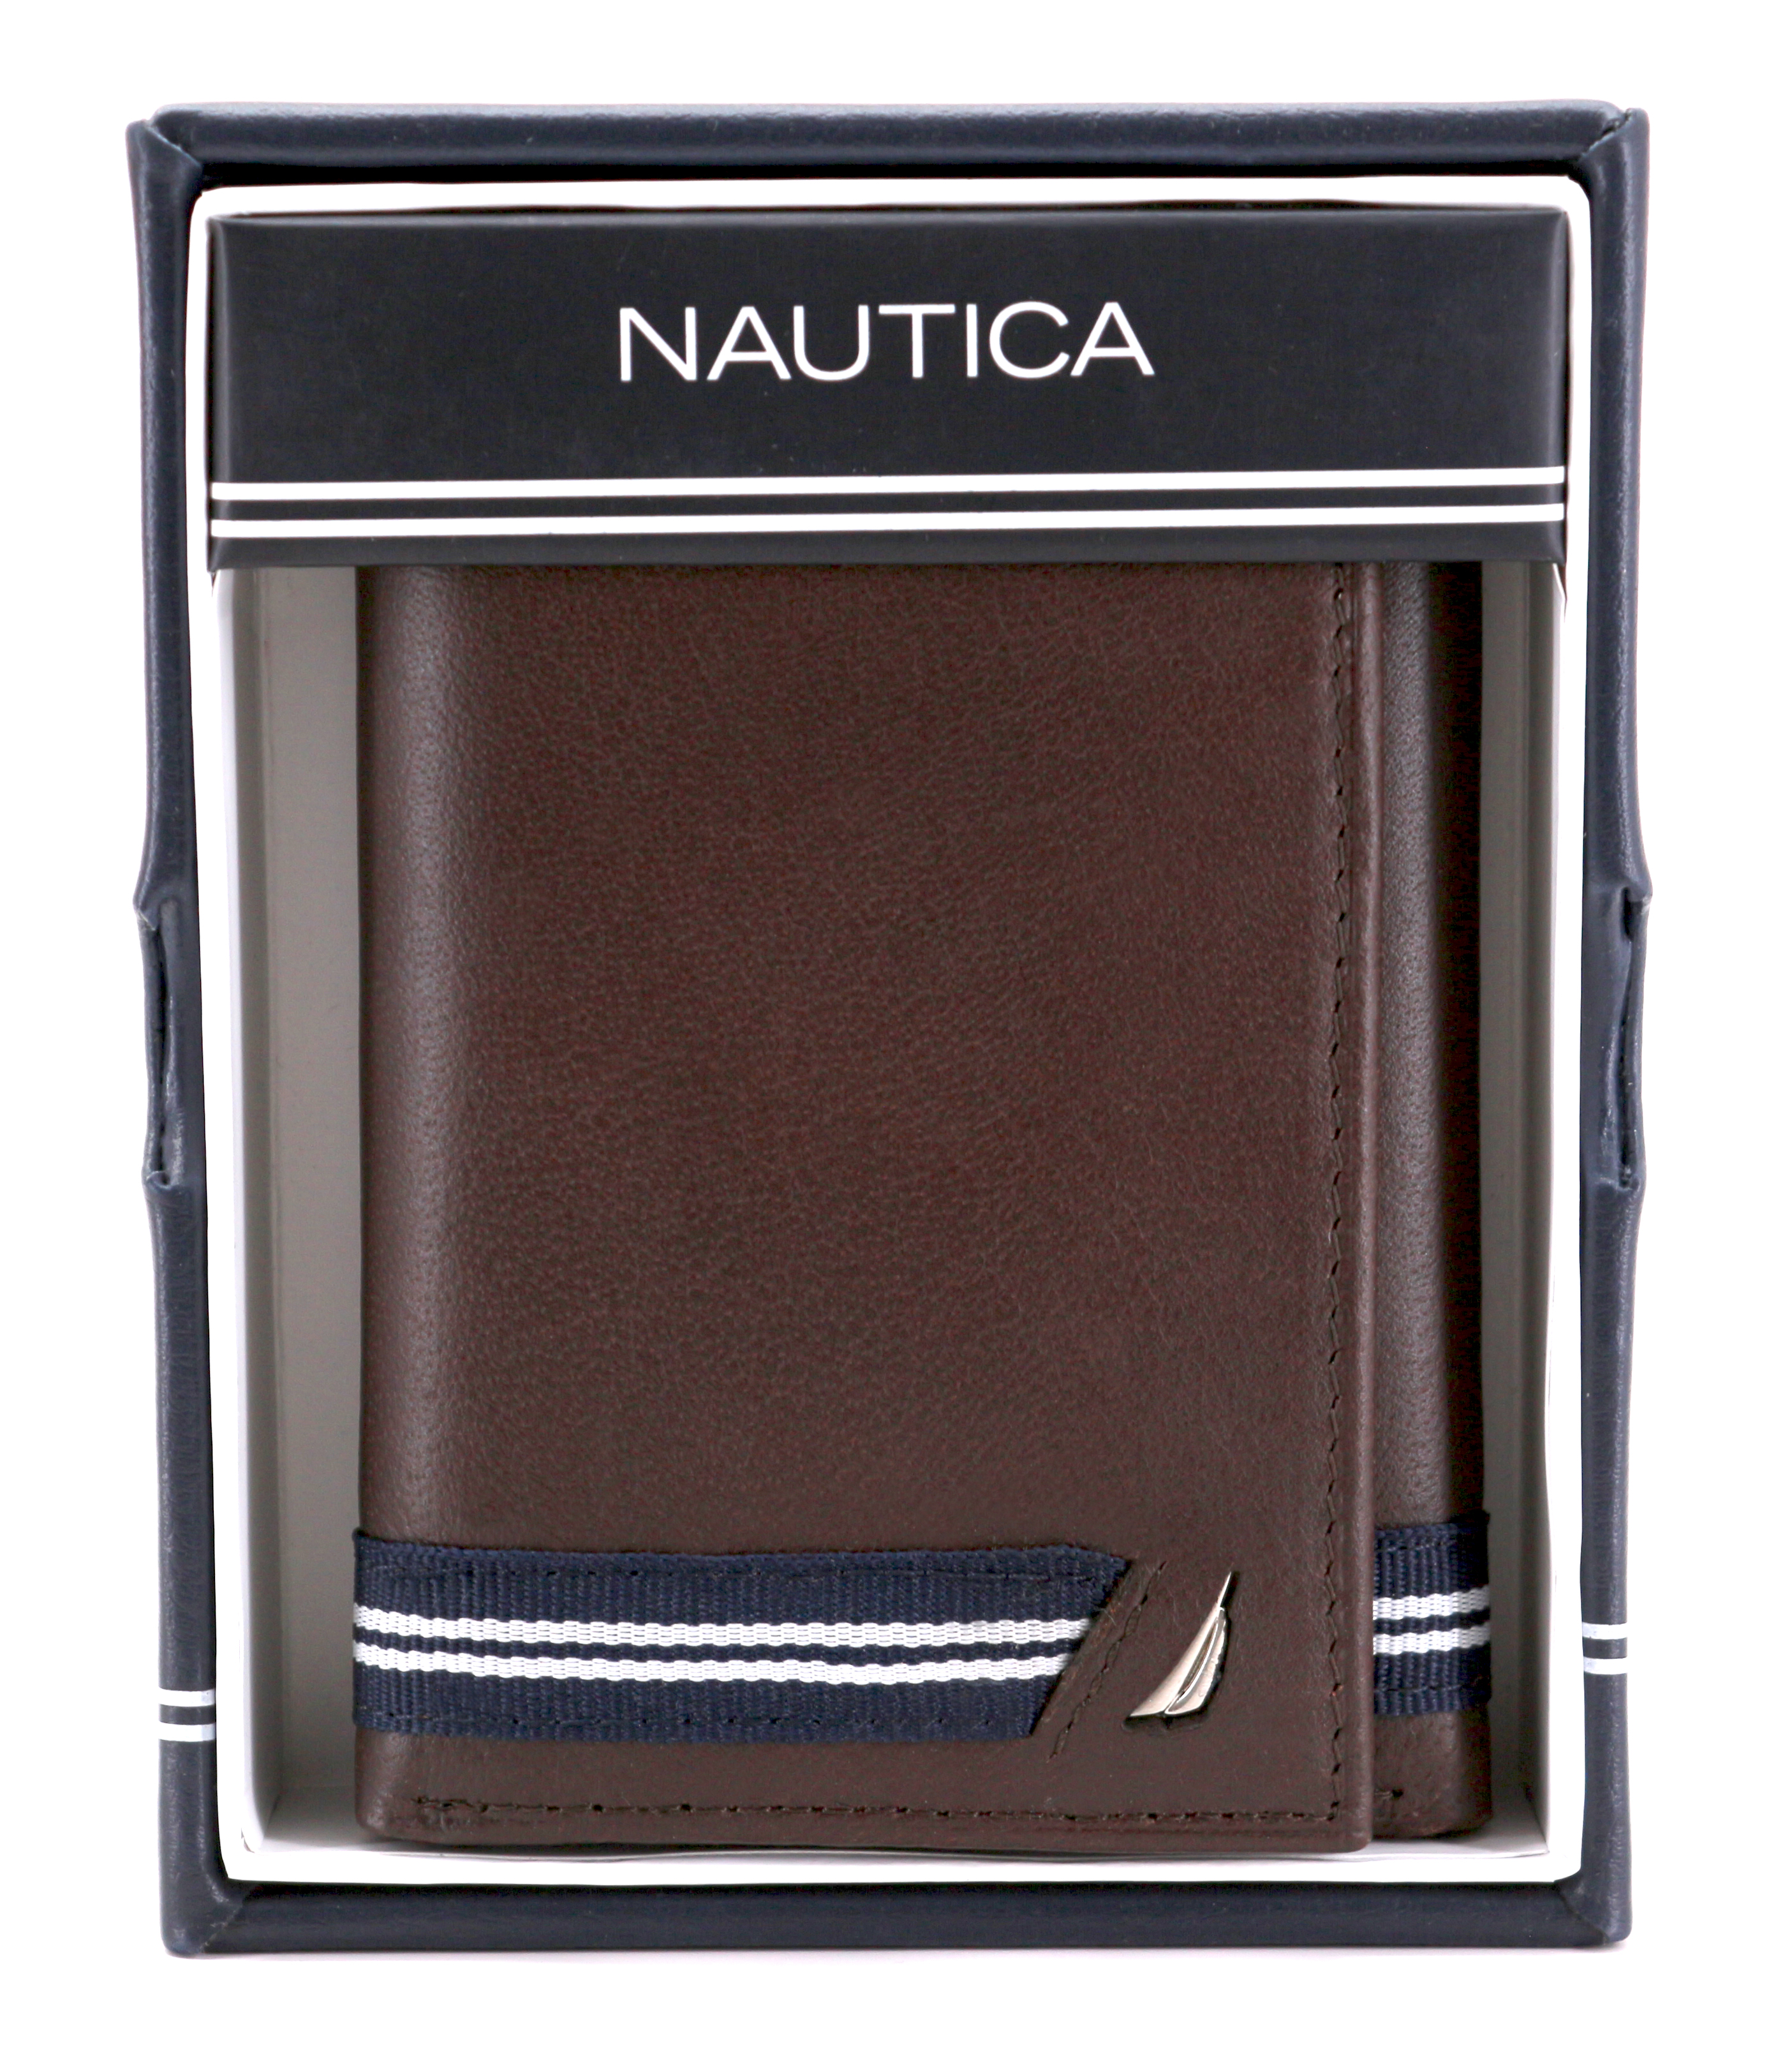 Nautica-Men-039-s-Genuine-Leather-Credit-Card-Id-Holder-Trifold-Wallet thumbnail 20